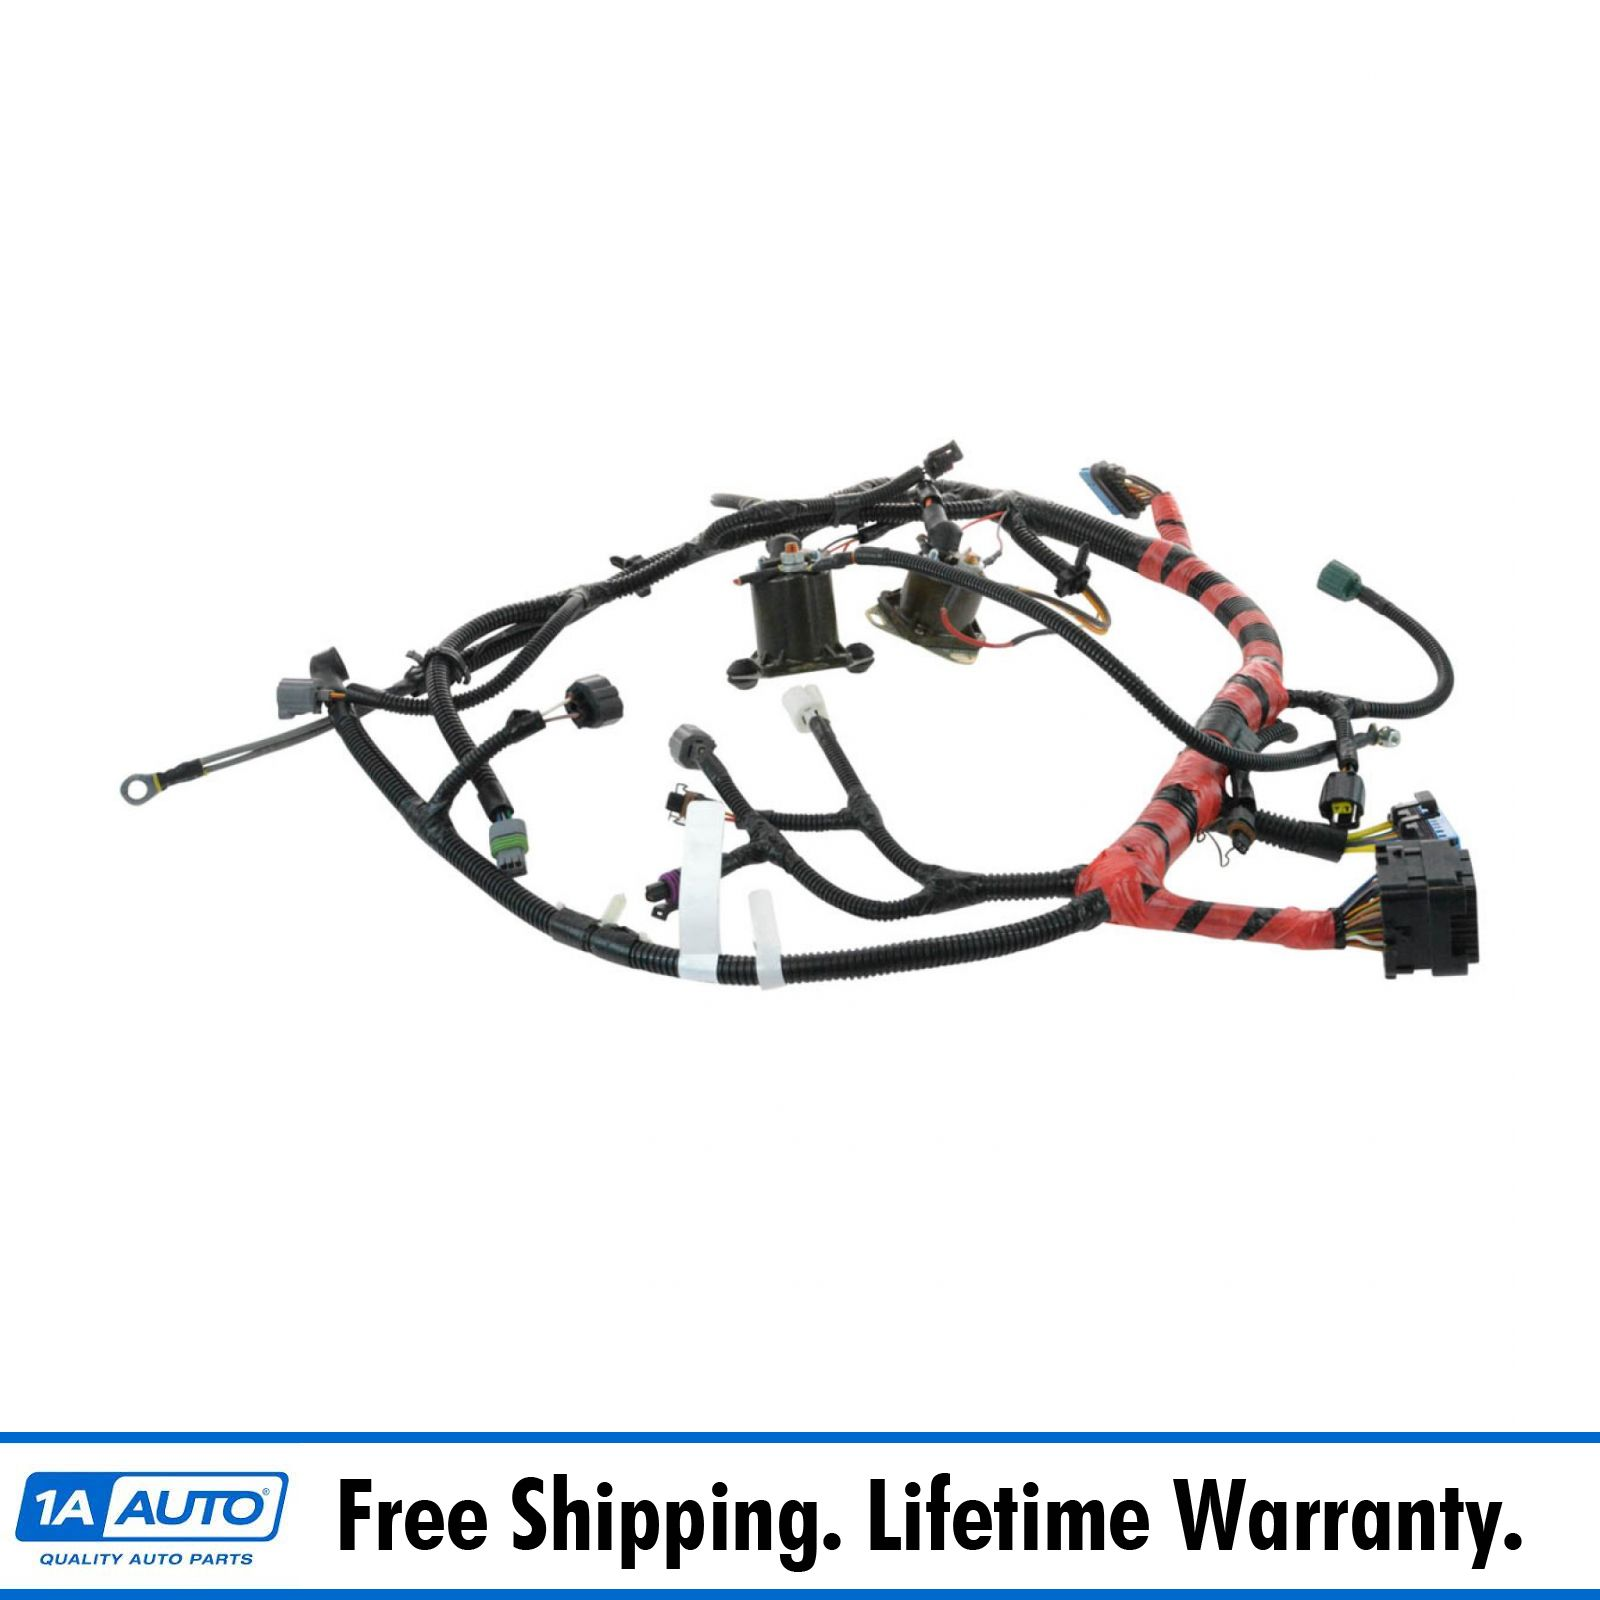 hight resolution of oem f81z12b637fa main engine wiring harness for super duty pickup truck suv new